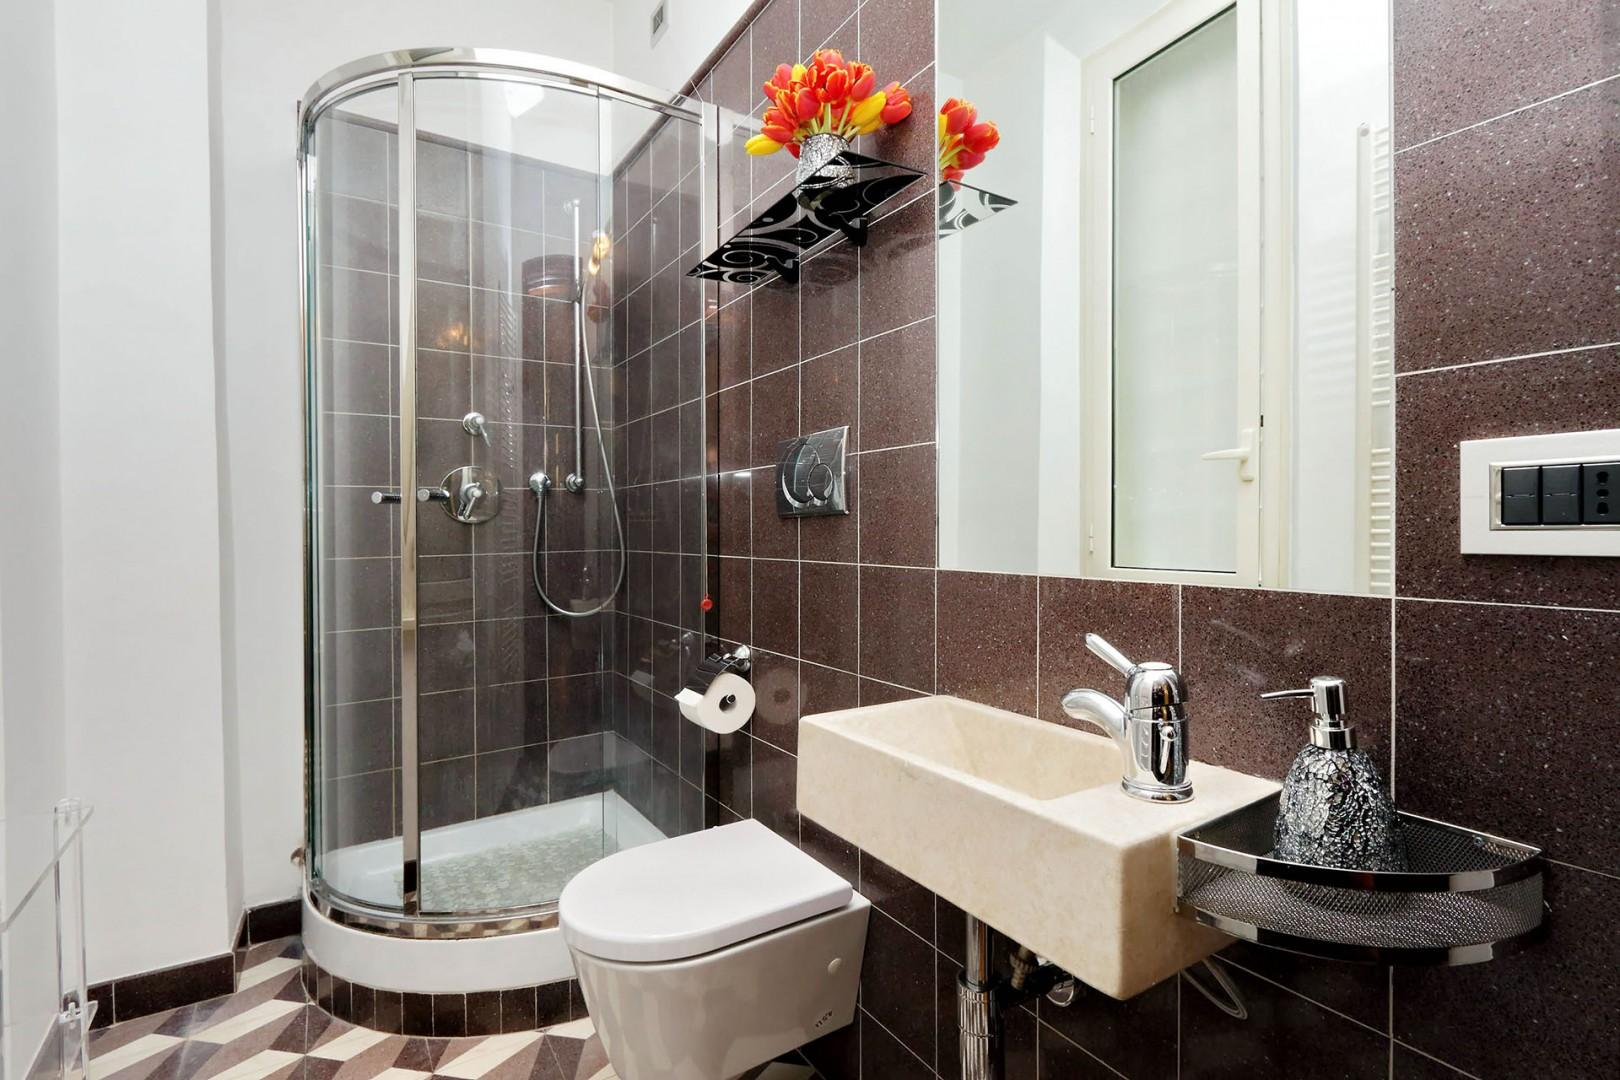 Modern bathroom 3, is located in the hallway right next to bedroom 4.